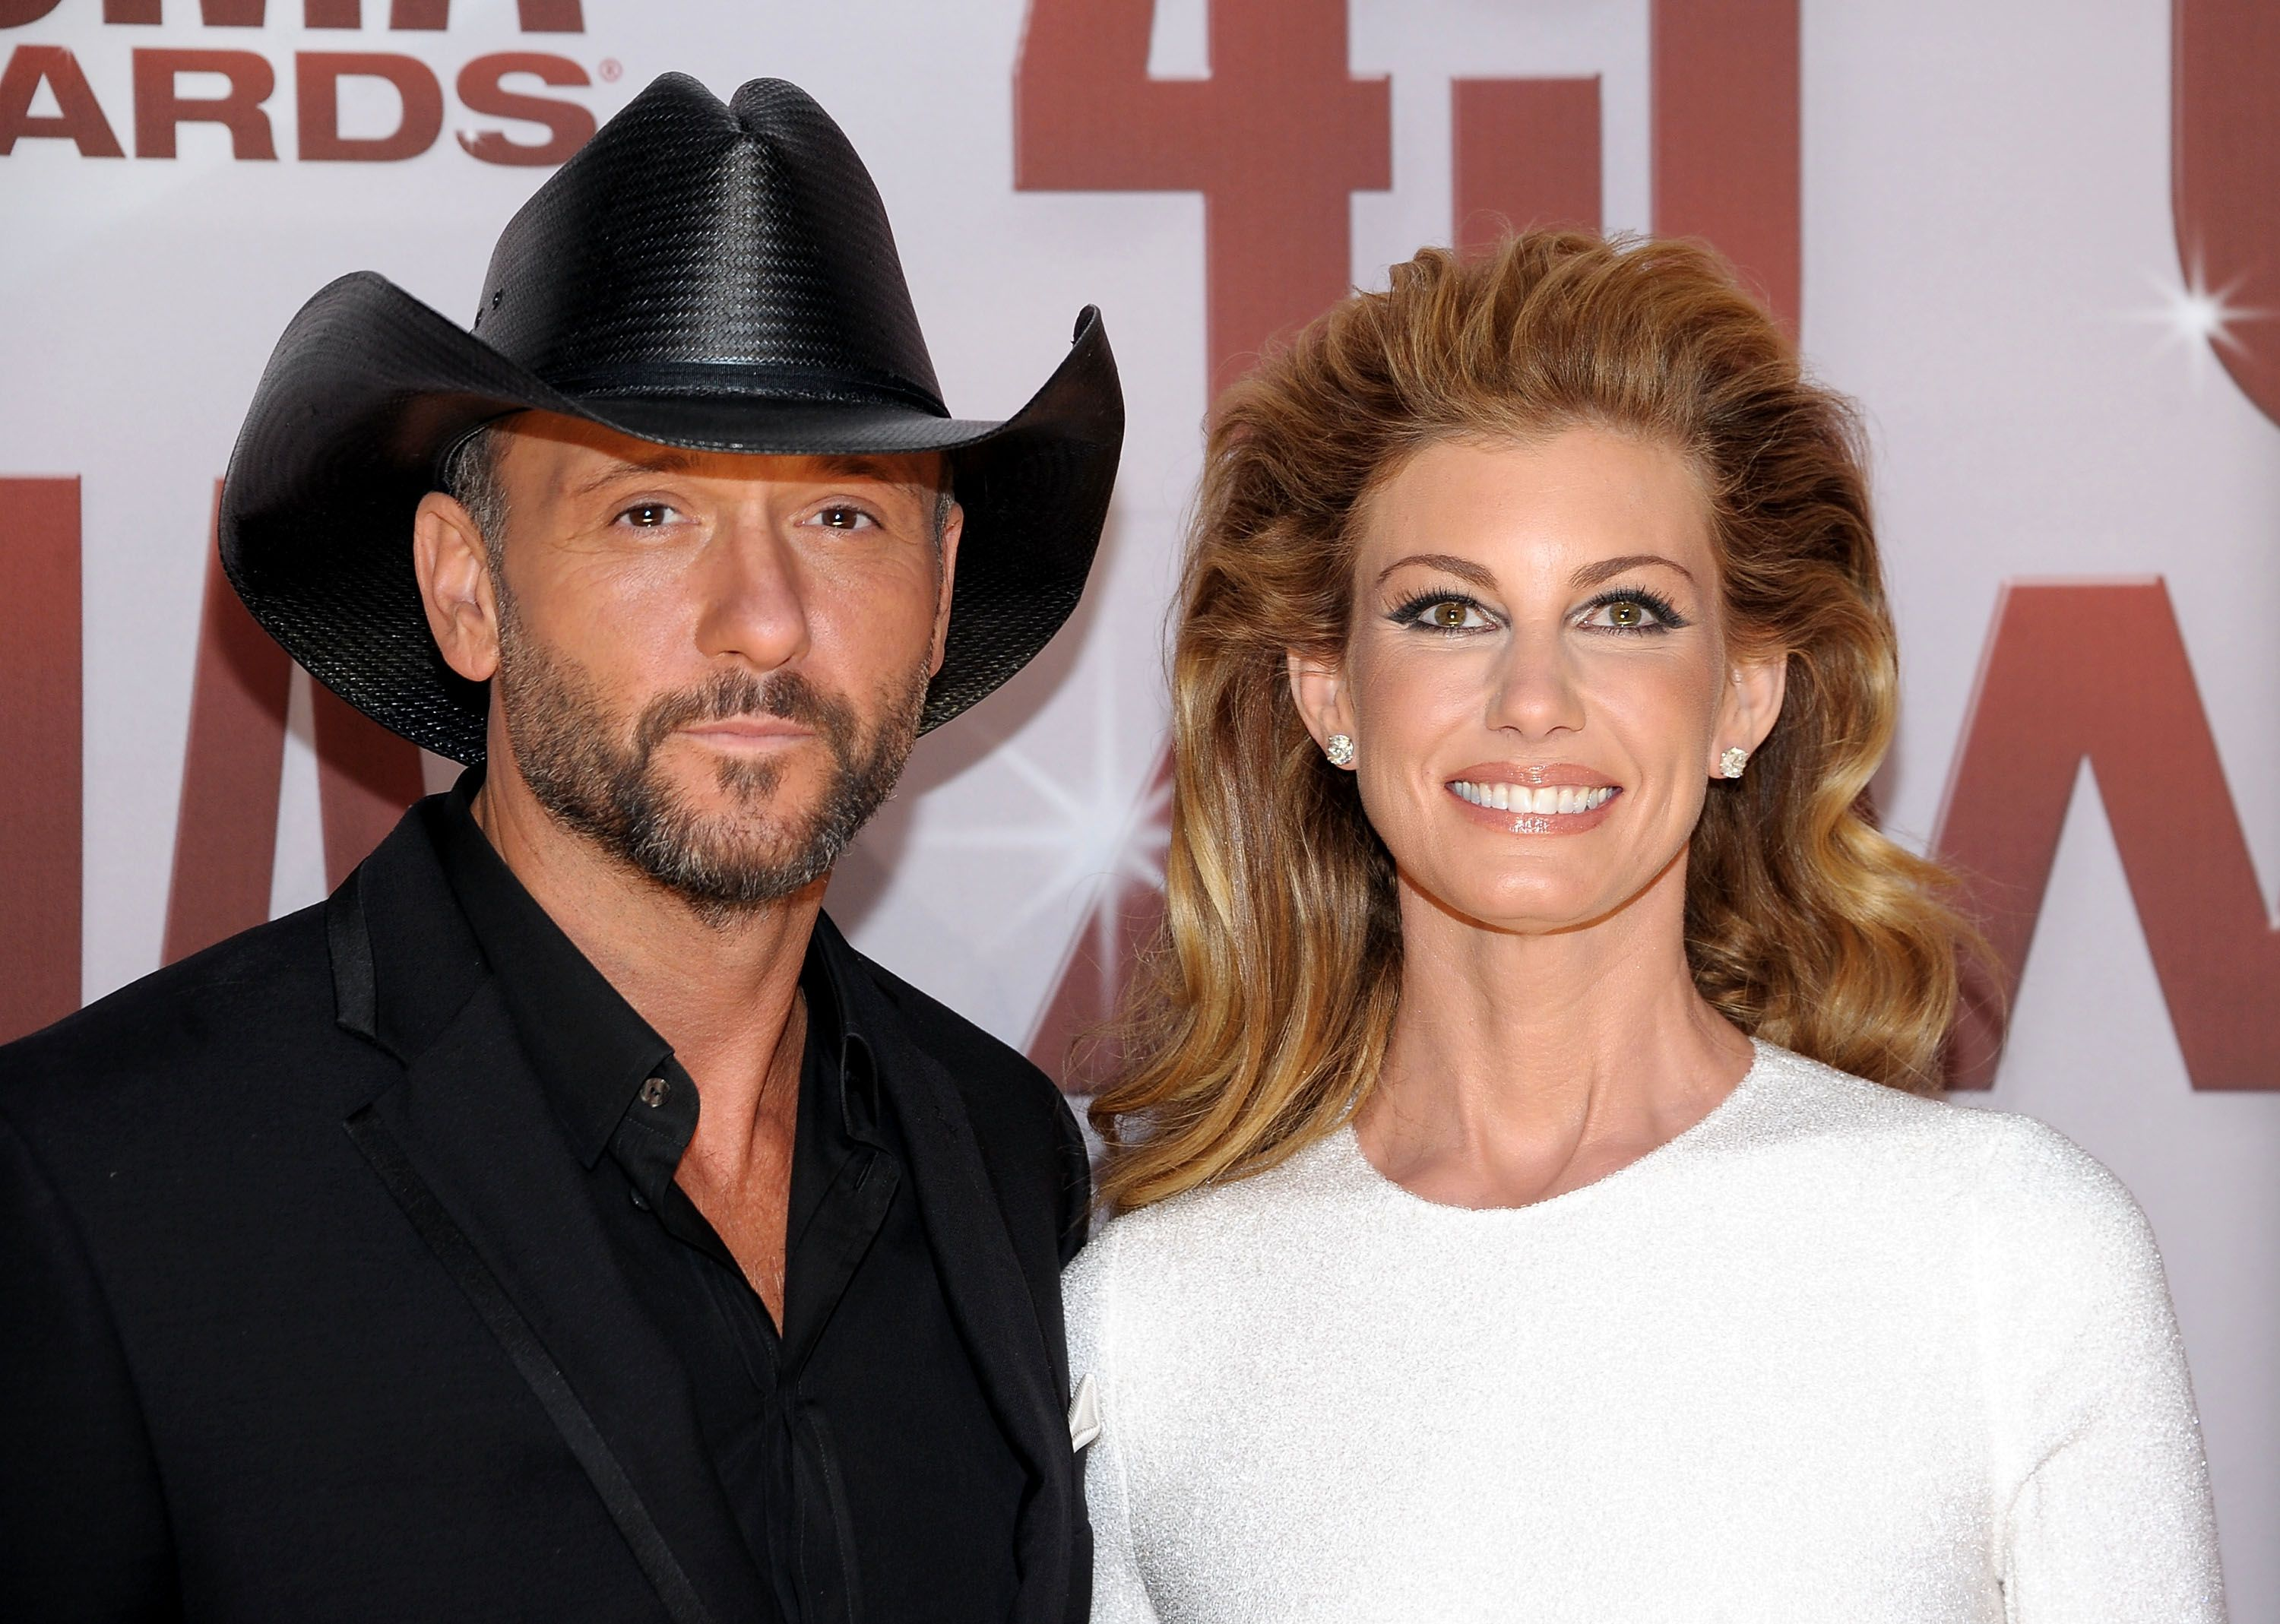 Tim McGraw and Faith Hill at the 45th annual CMA Awards at the Bridgestone Arena on November 9, 2011 in Nashville, Tennessee   Photo: Getty Images